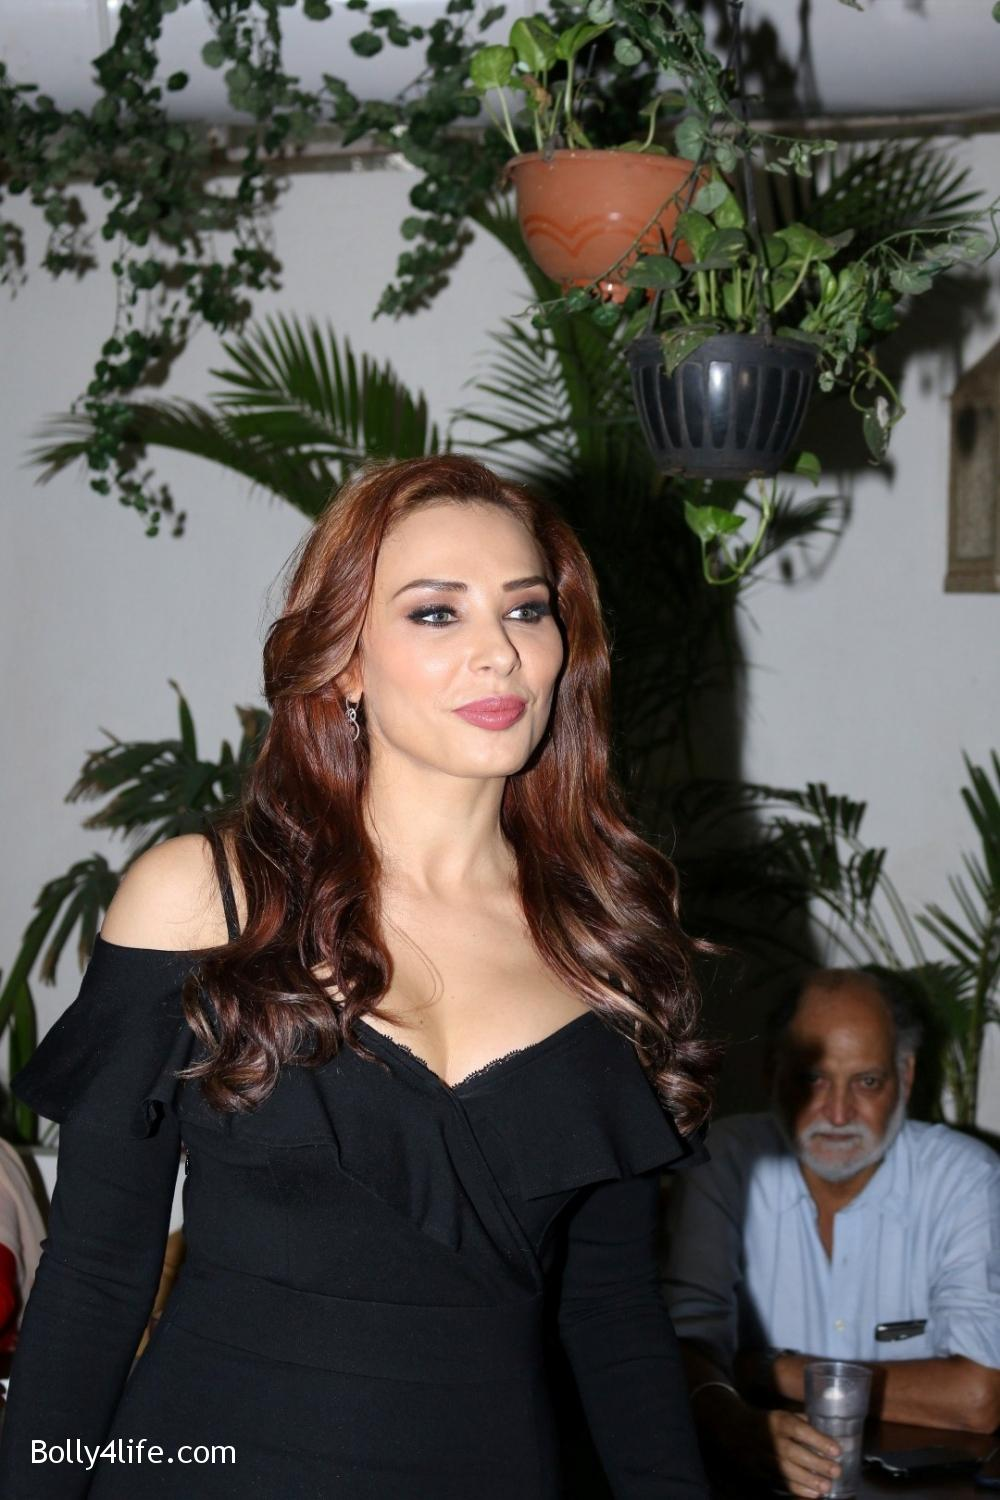 Salman-Khans-friend-Iulia-Vantur-during-teaser-launch-of-song-Every-Night-and-Day-14.jpg